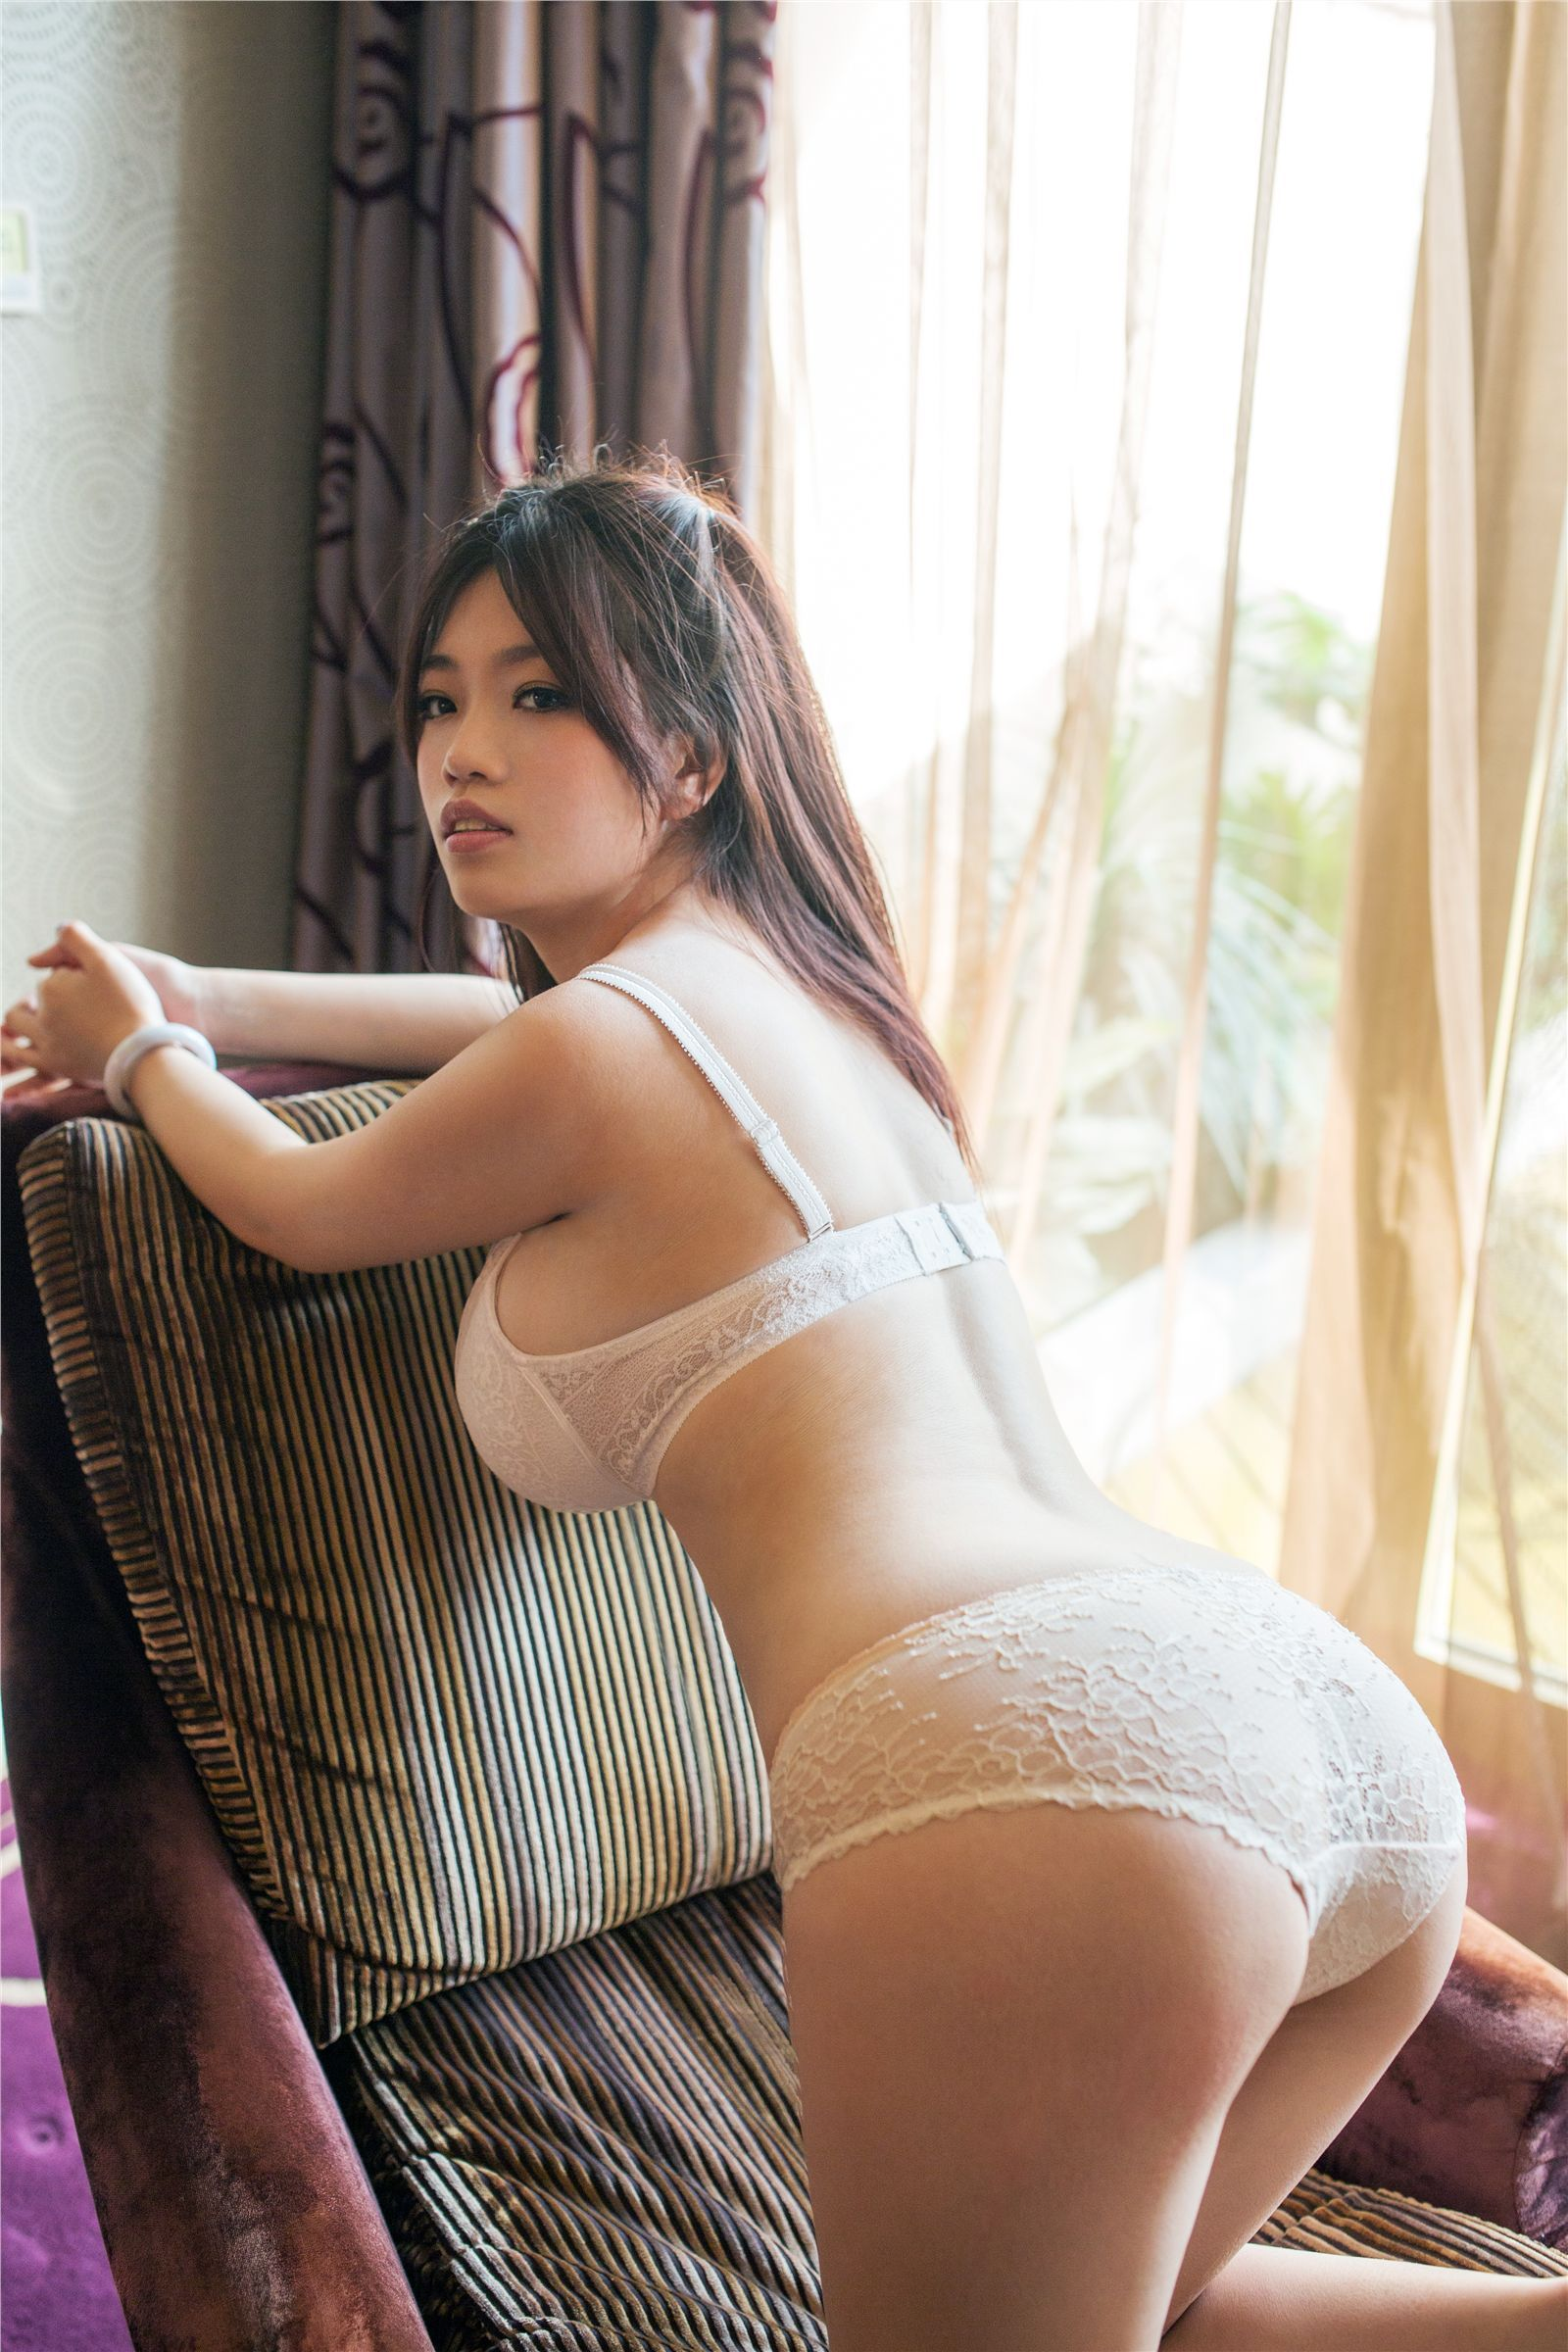 Actresses nude images